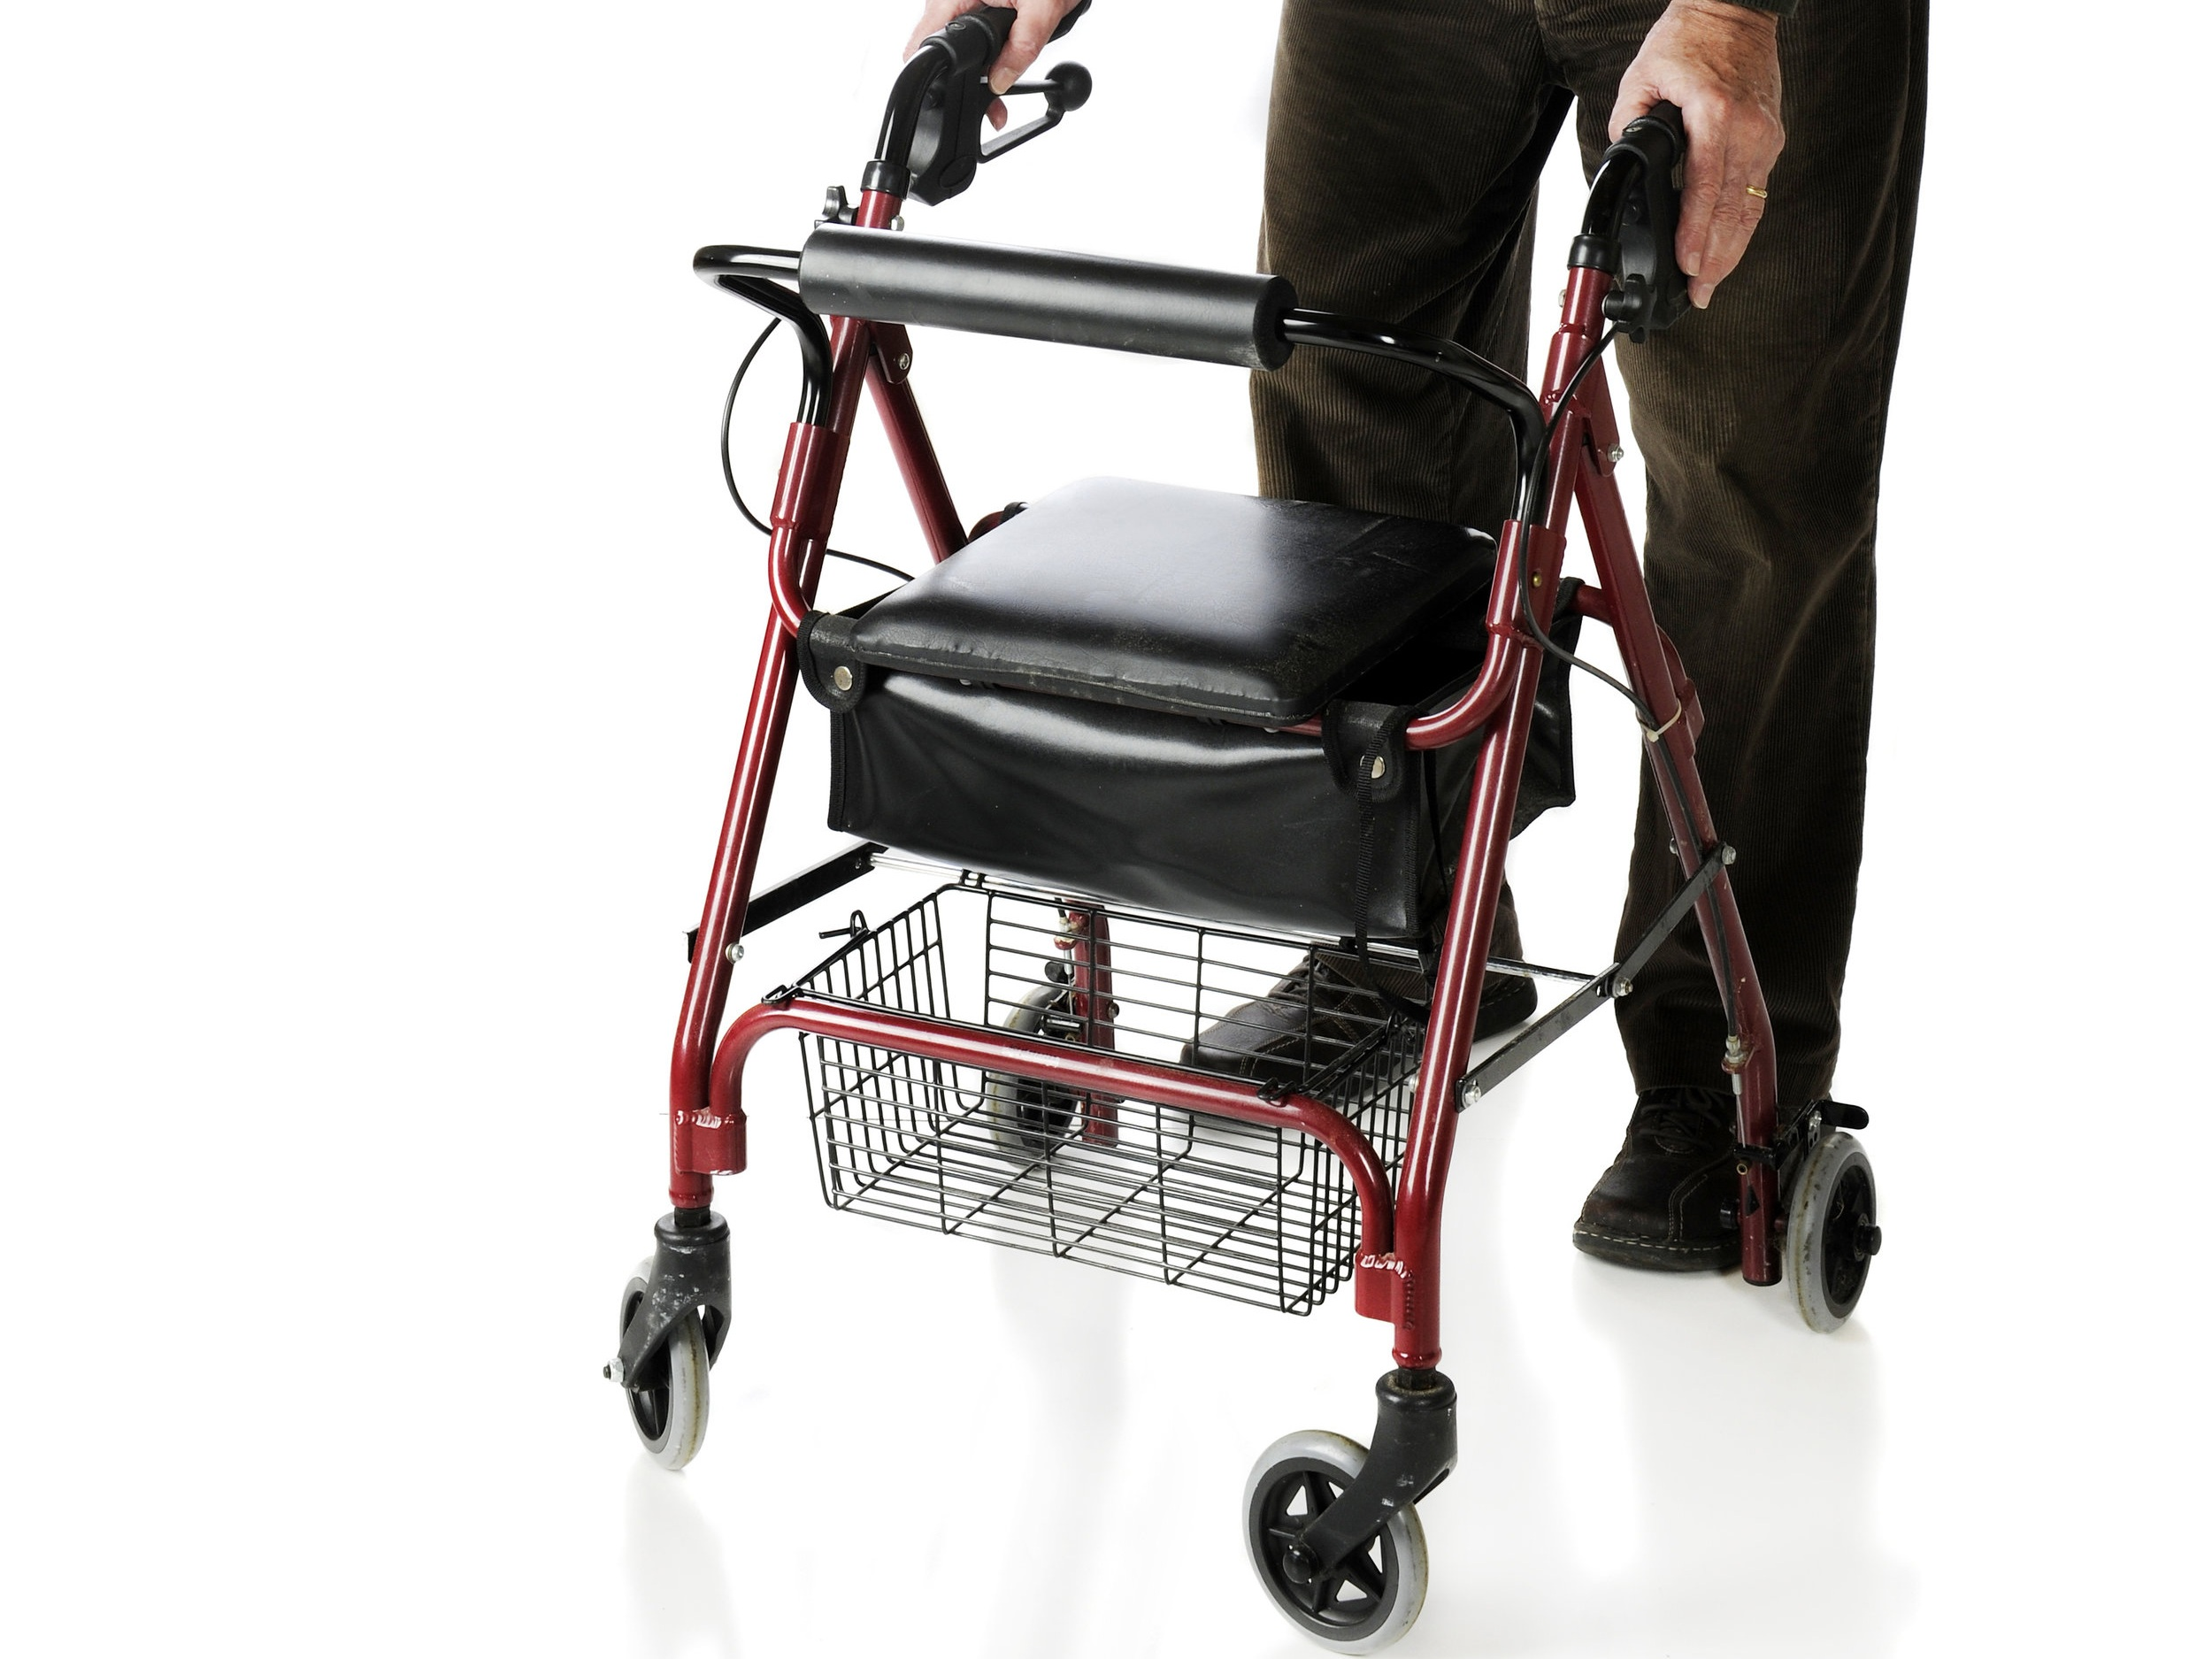 Walkers prevent falls. - WalkWise makes walkers fun, engaging, and smart.